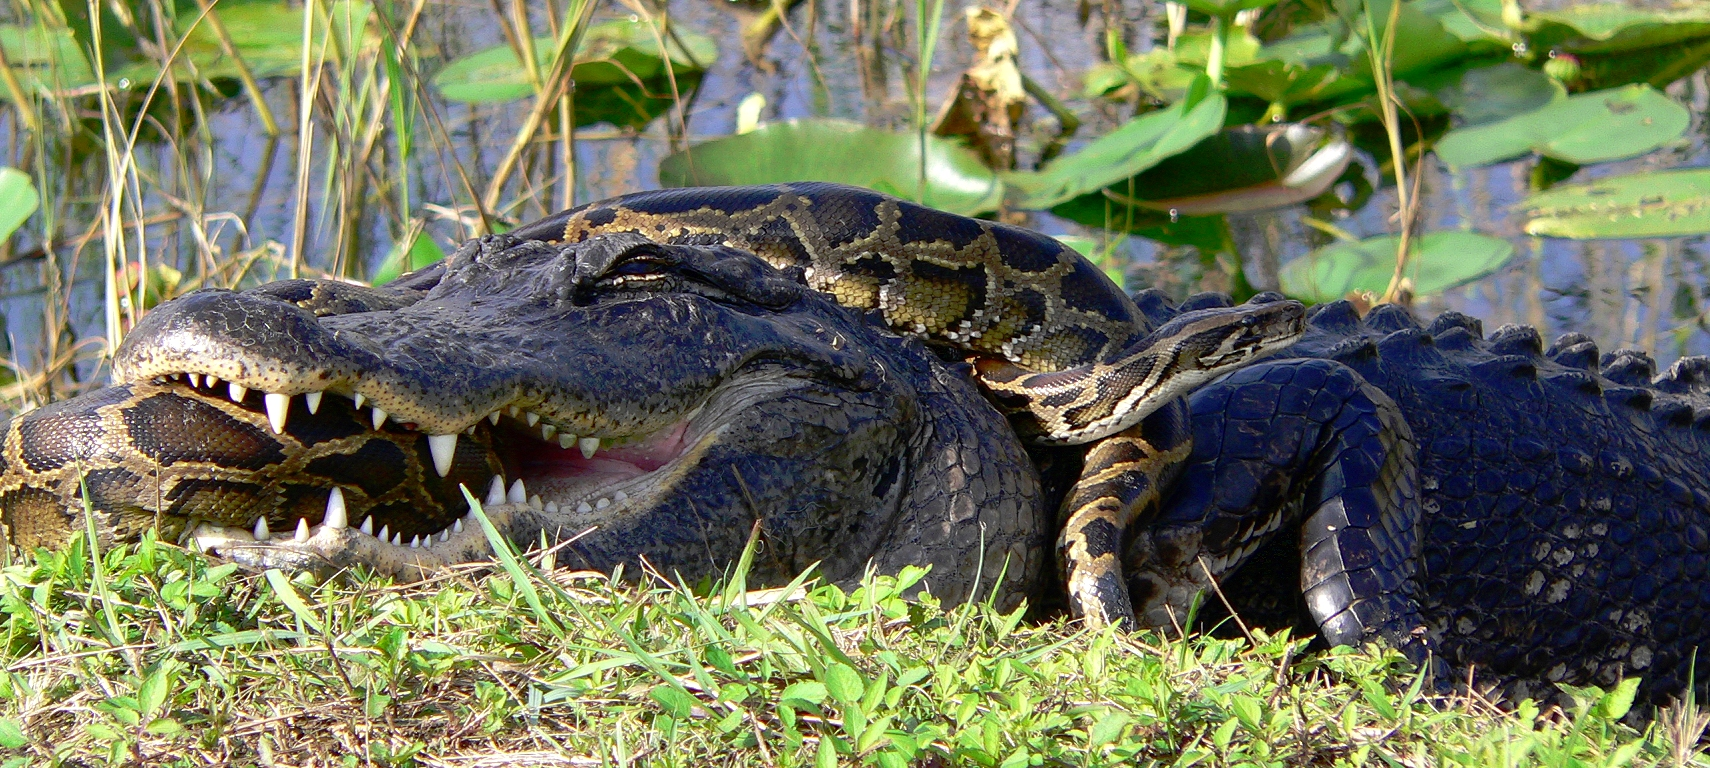 In the Everglades, sometimes an alligator will eat a python, but other times the python eats the alligator!